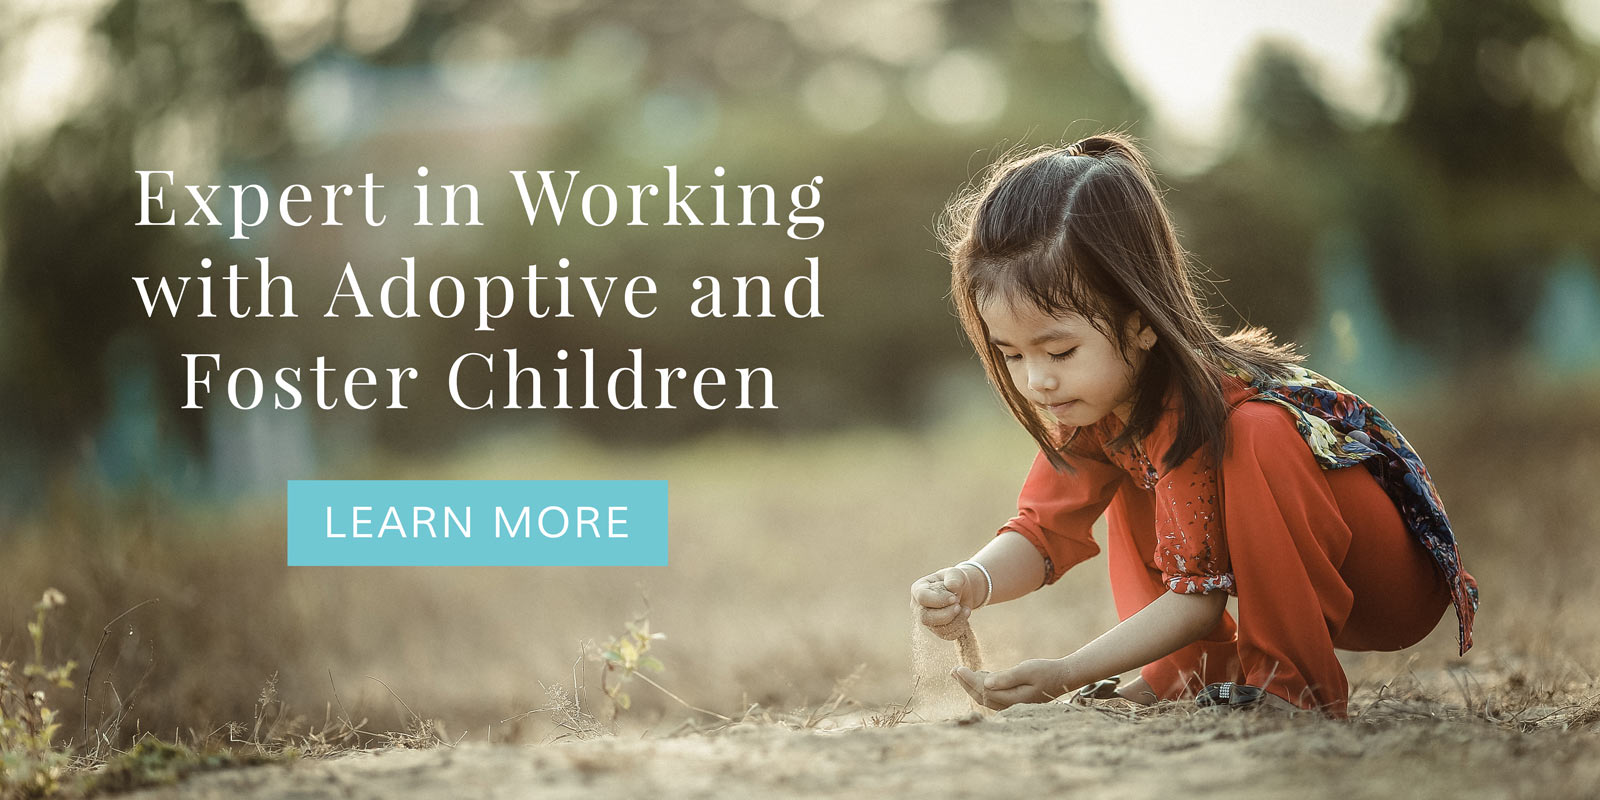 Child Counselor expert in therapy for foster and adoptive children